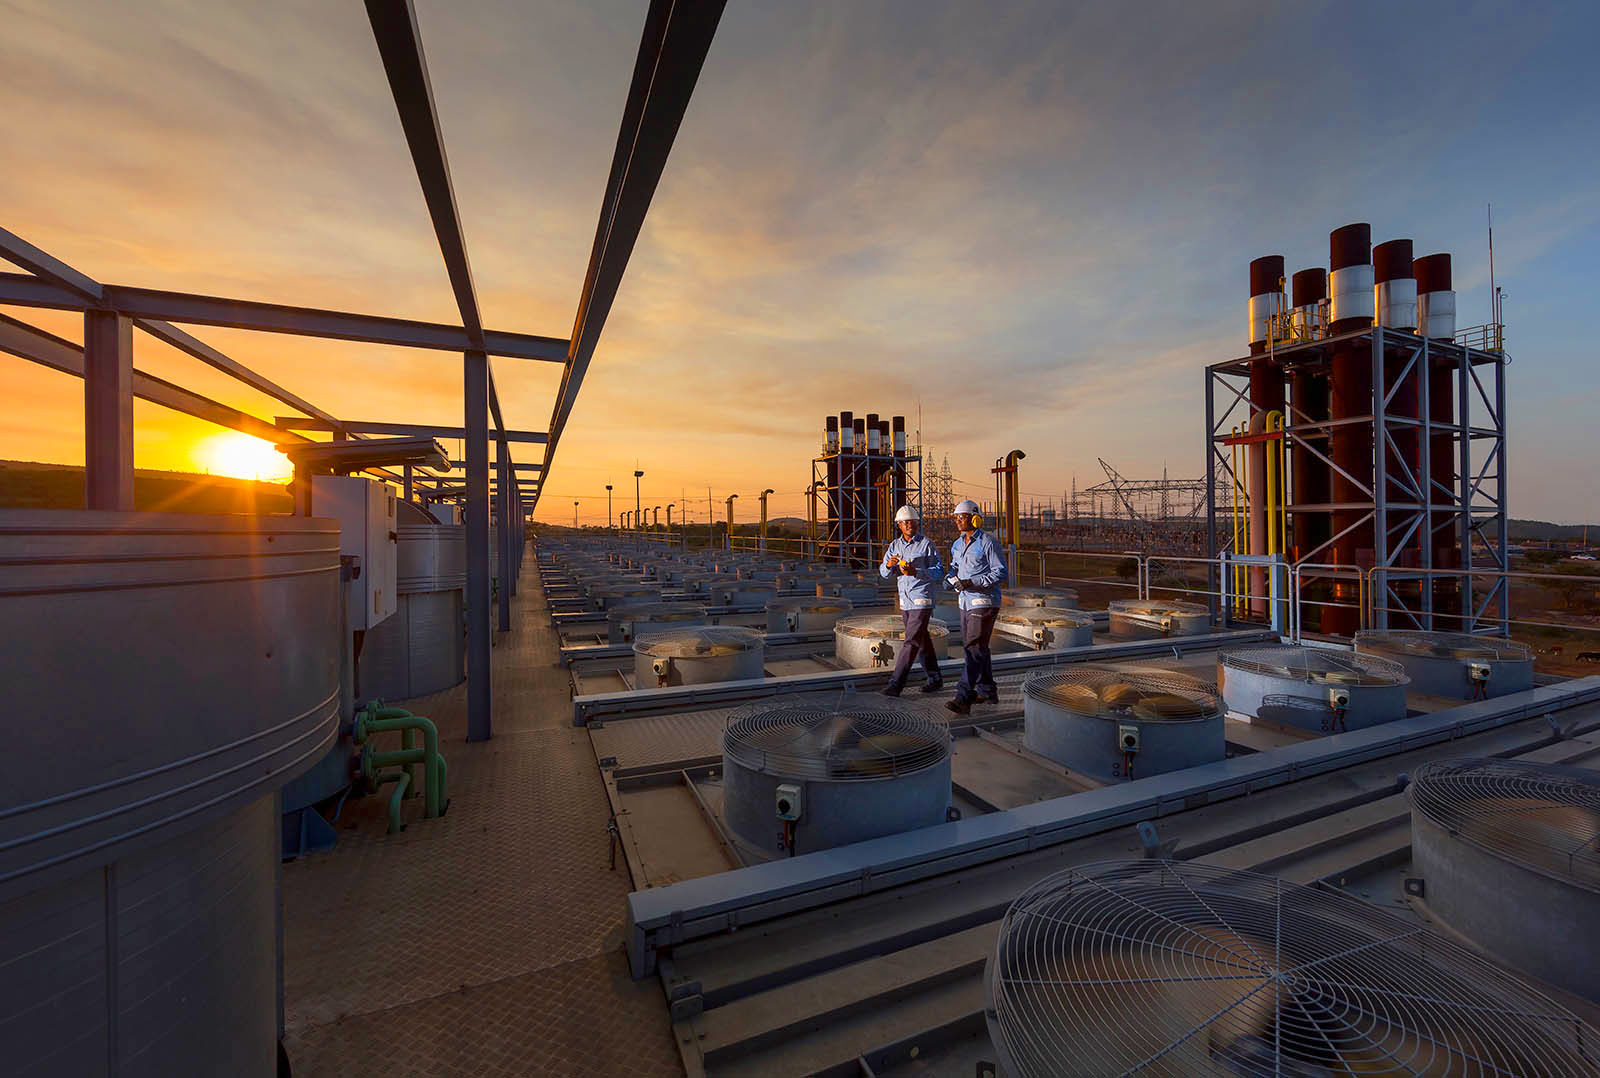 Sunset two technicians discus progress on industrial gas engine power plant